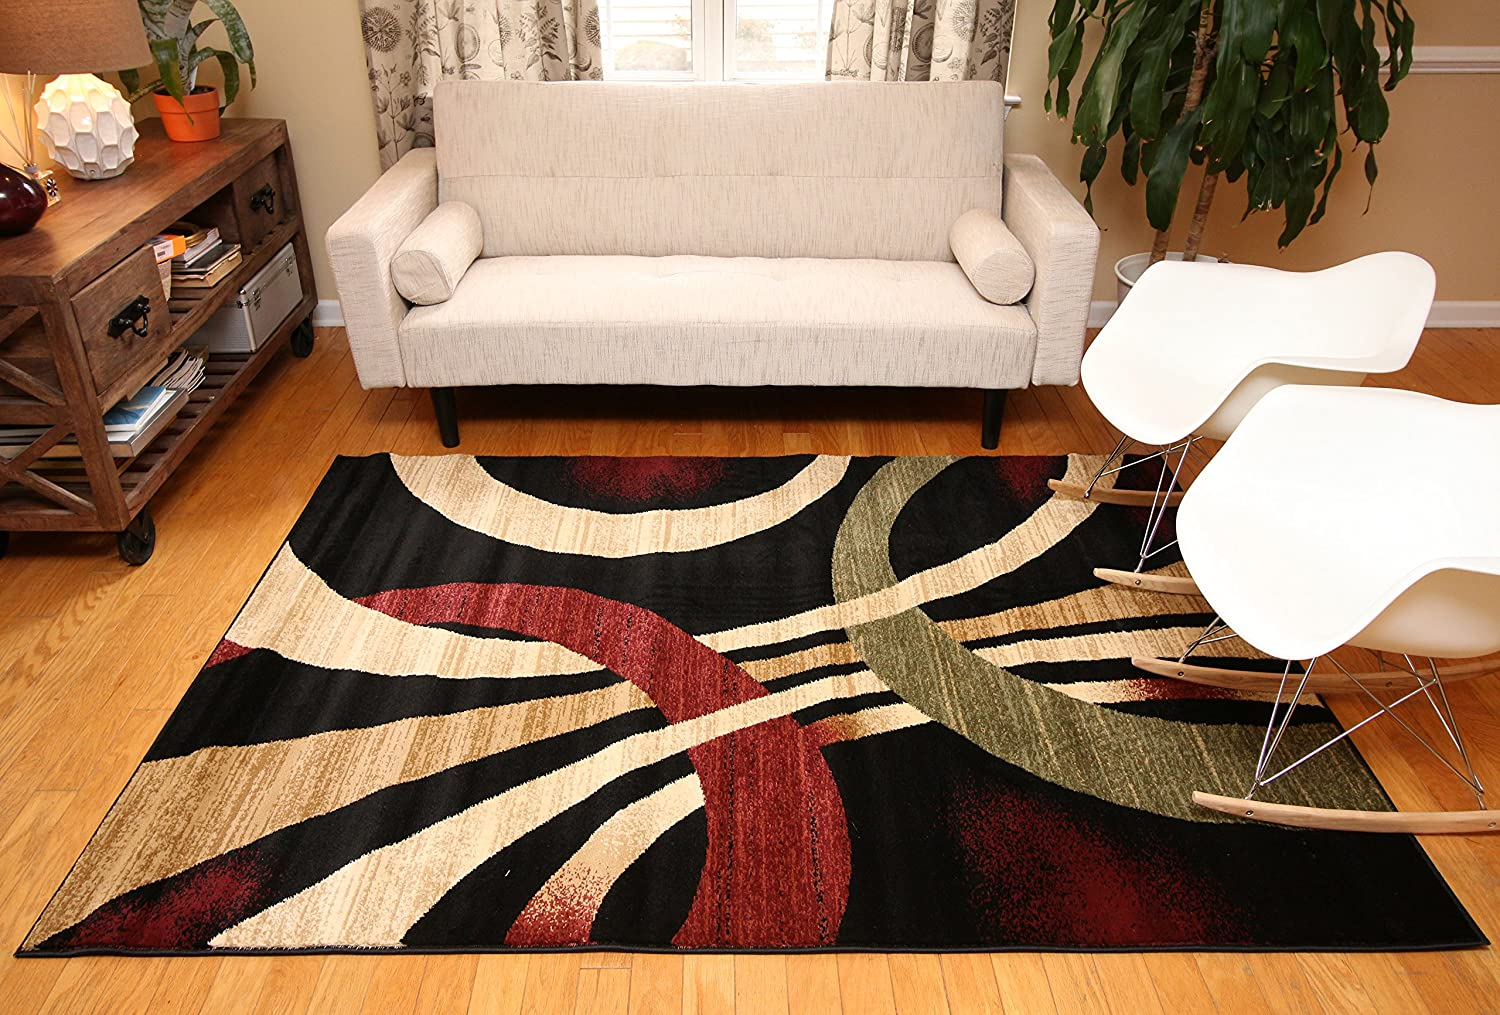 Amazon feraghan new city hil1030 contemporary modern wavy amazon feraghan new city hil1030 contemporary modern wavy circles area rug 5 x 8 feet brown and beige kitchen dining baanklon Gallery